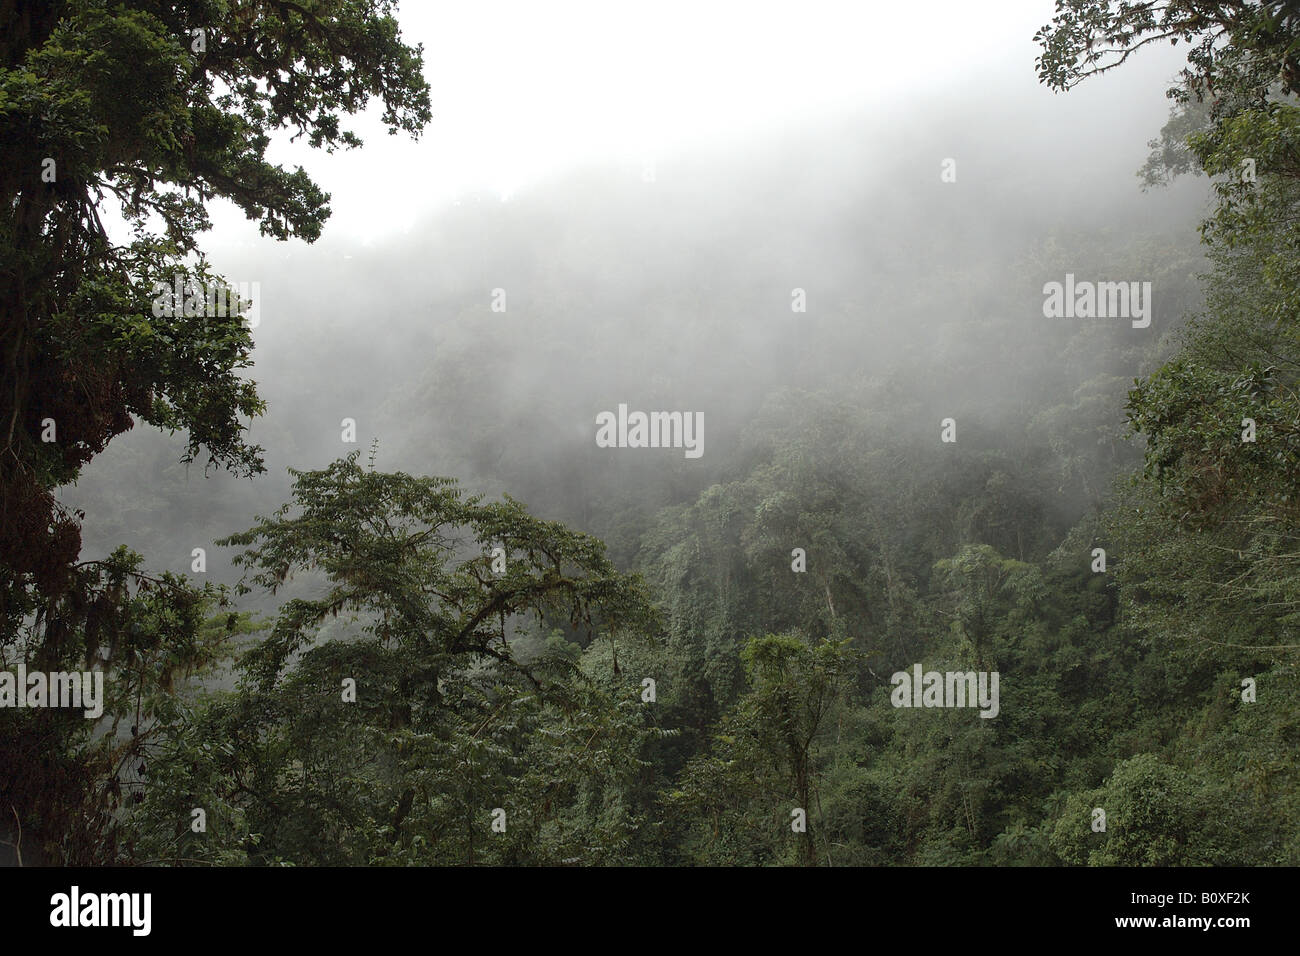 clouded forest bromeliacee epiphitic plants Cerro de la Muerte Costarica rain forest foresta pluviale tropicale foresta montana Stock Photo